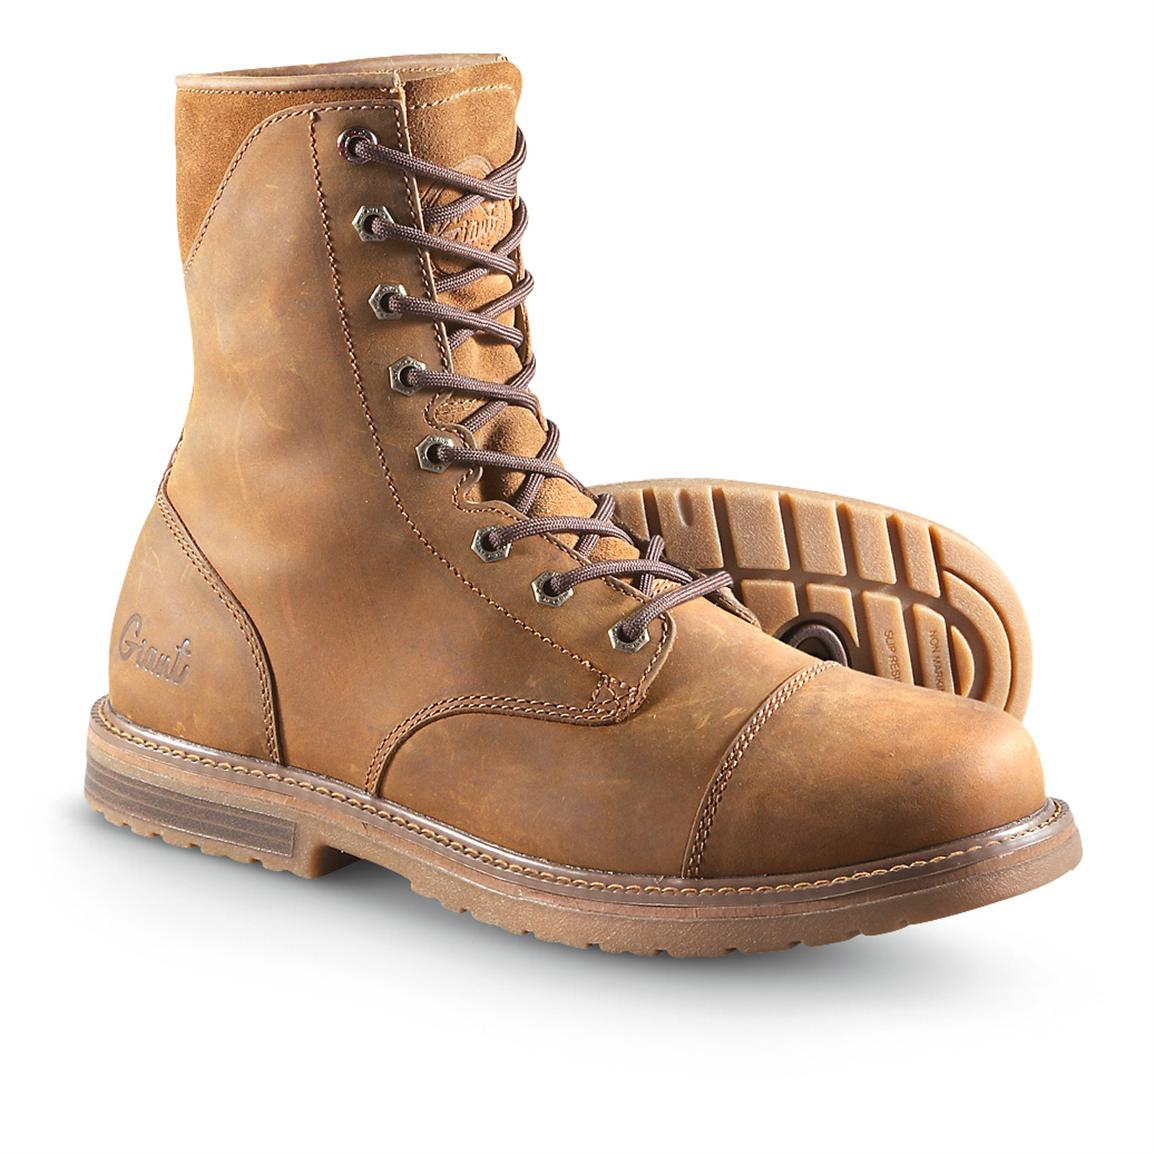 Men's Casual Work Boots - Giant™ by Georgia Boot® Mitchell Boots, Mocha